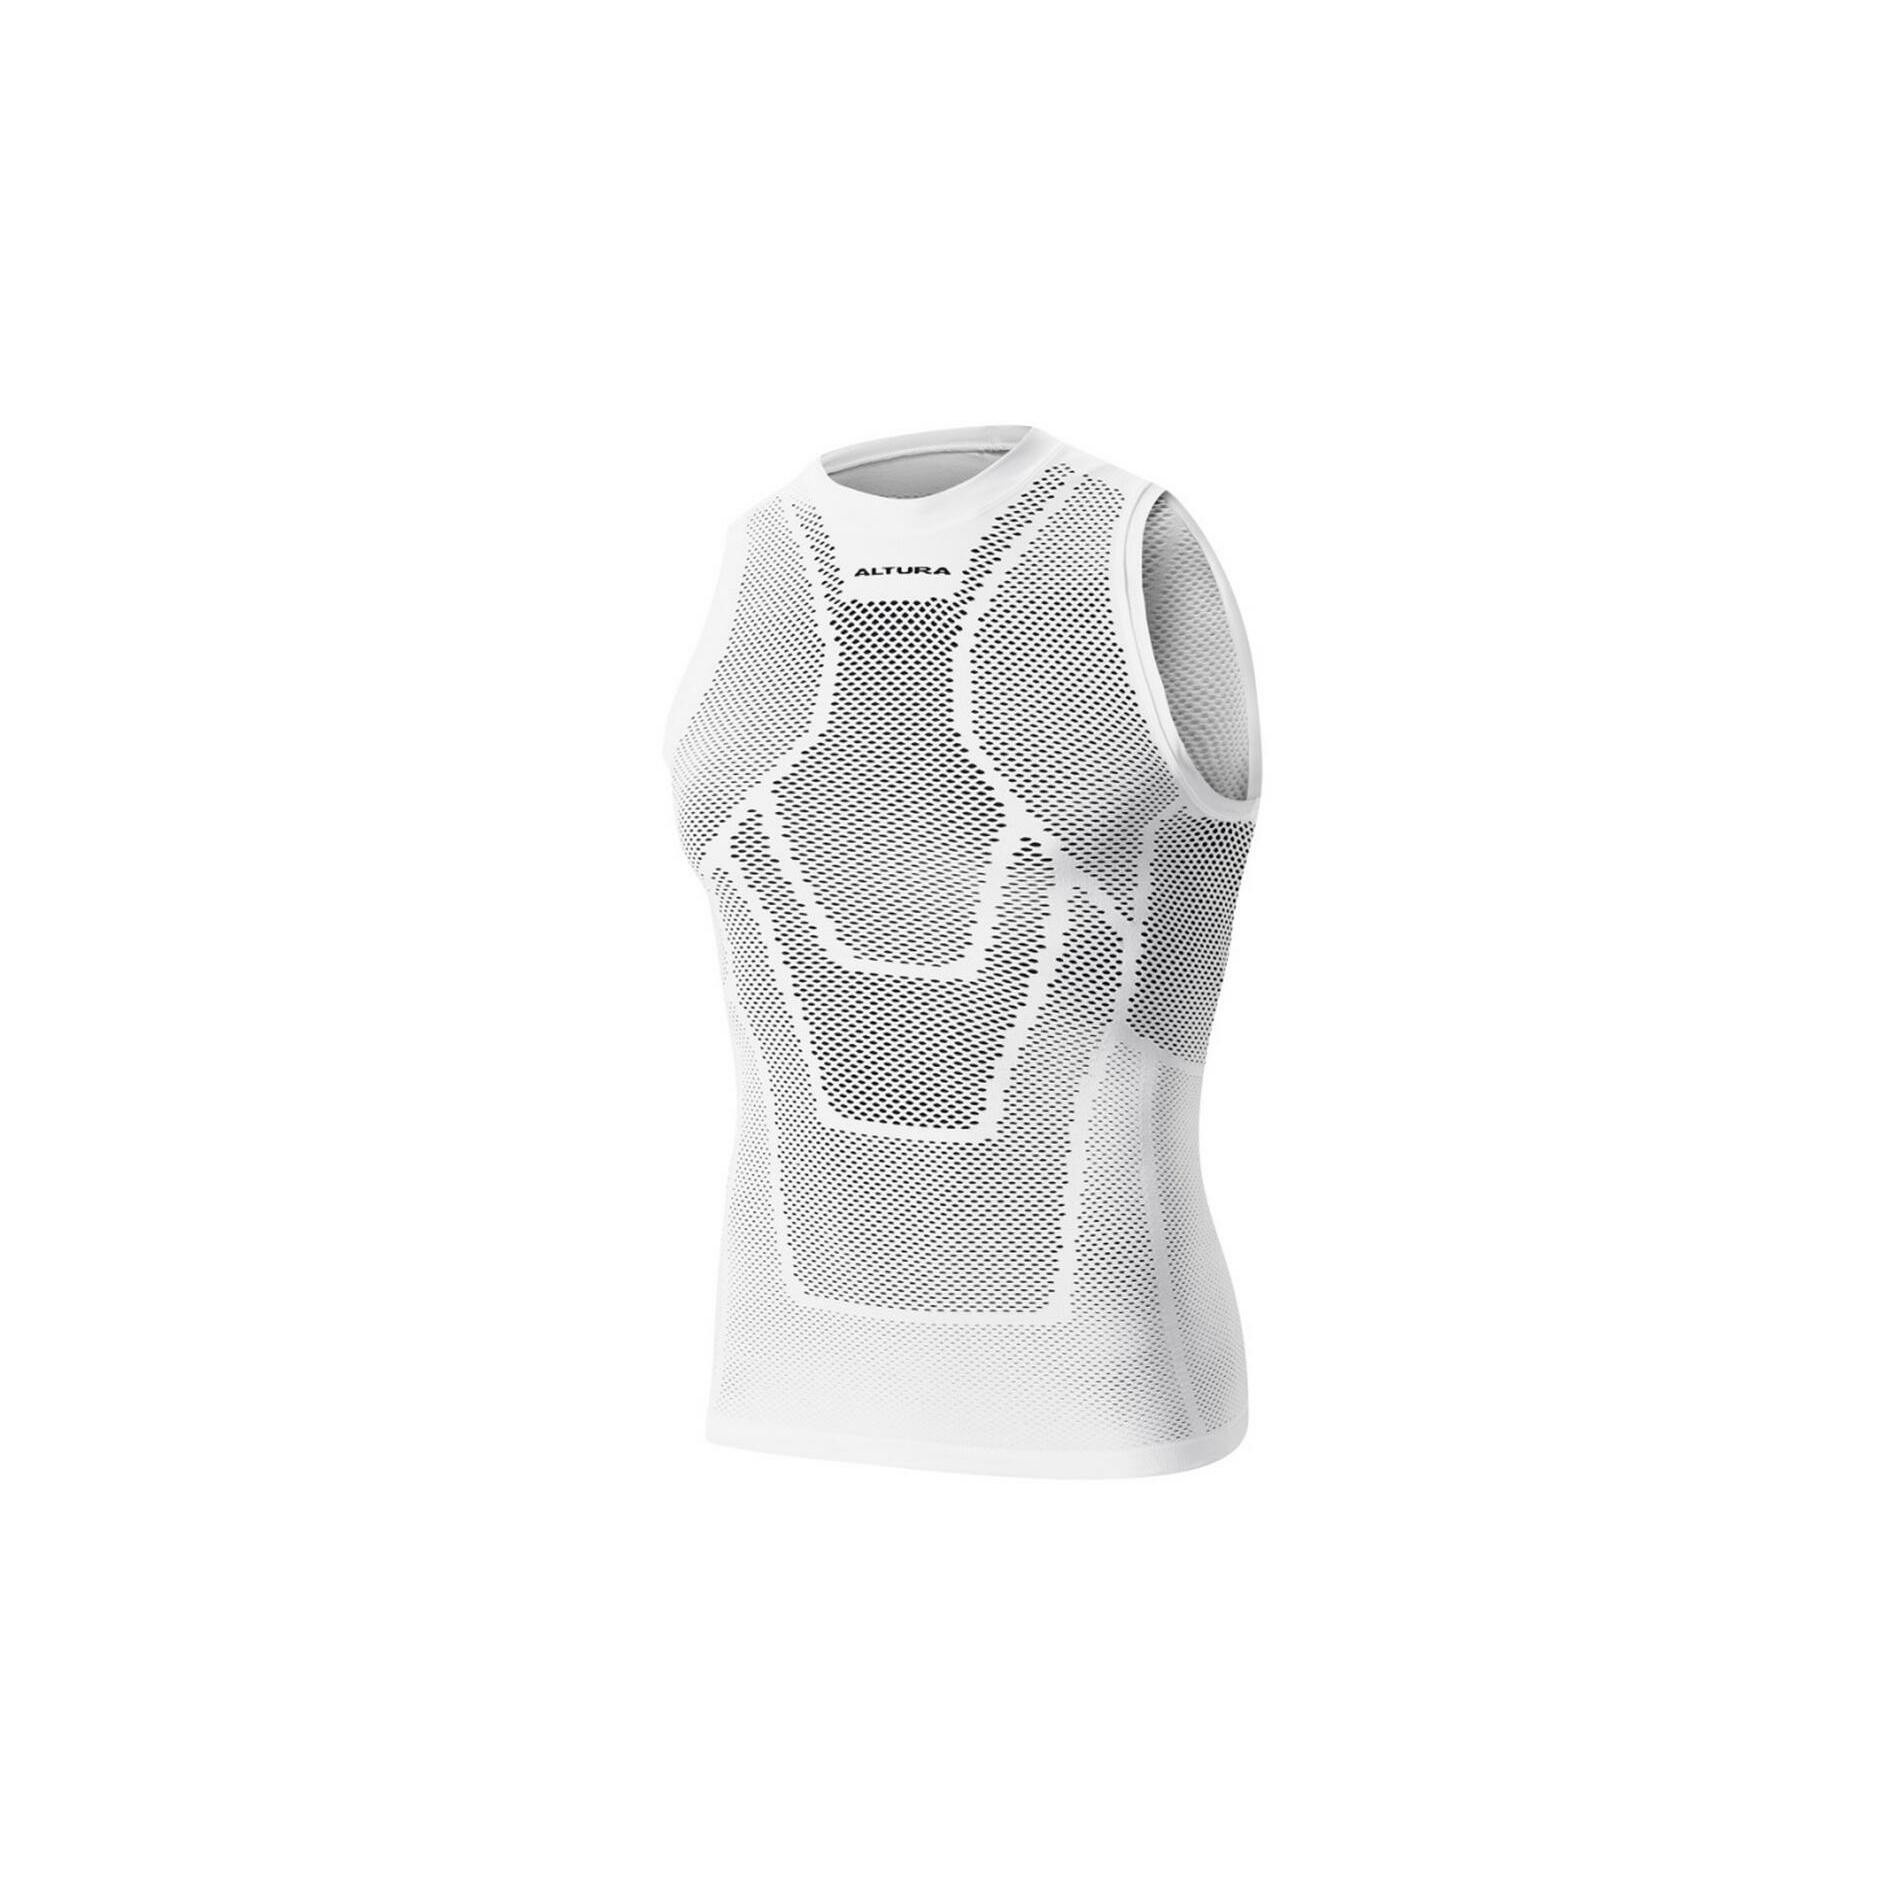 Altura Dy Mesh Vest Baselayer- Just reduced yet again.